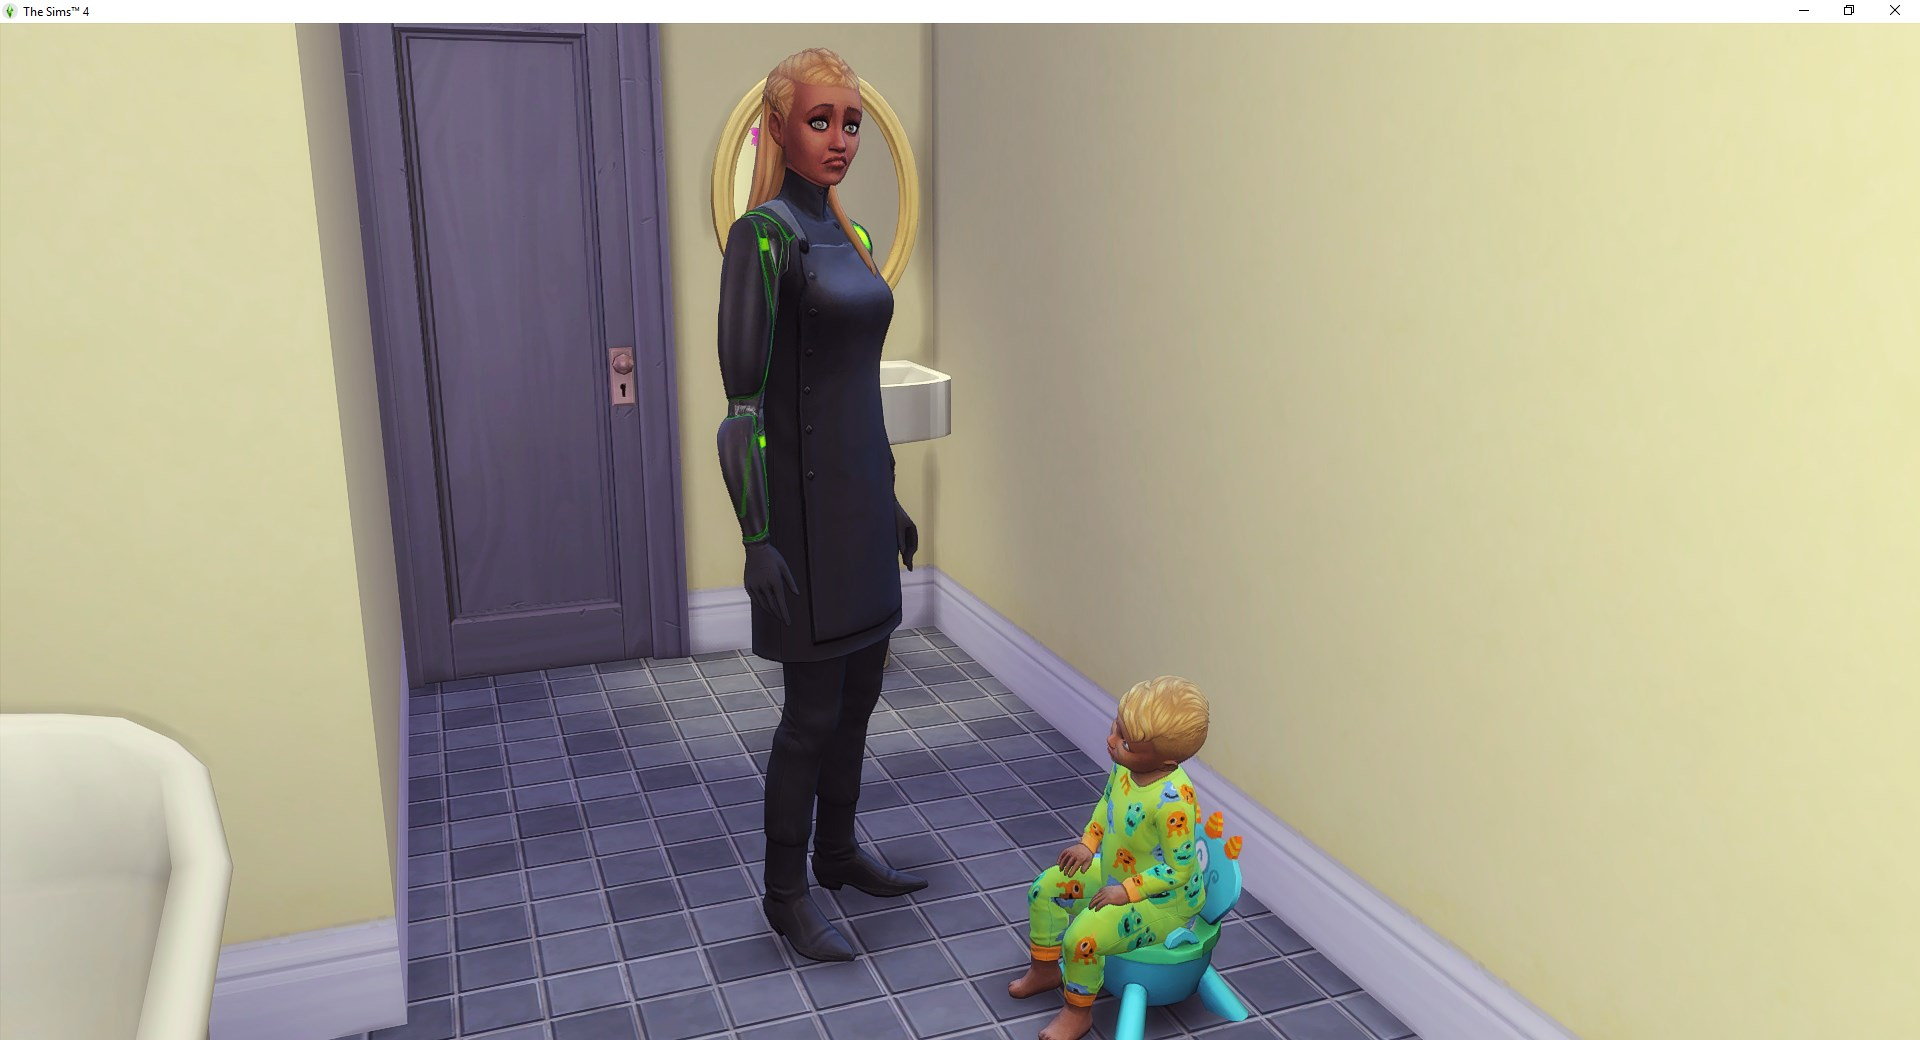 2019-08-14 07_44_06-The Sims™ 4